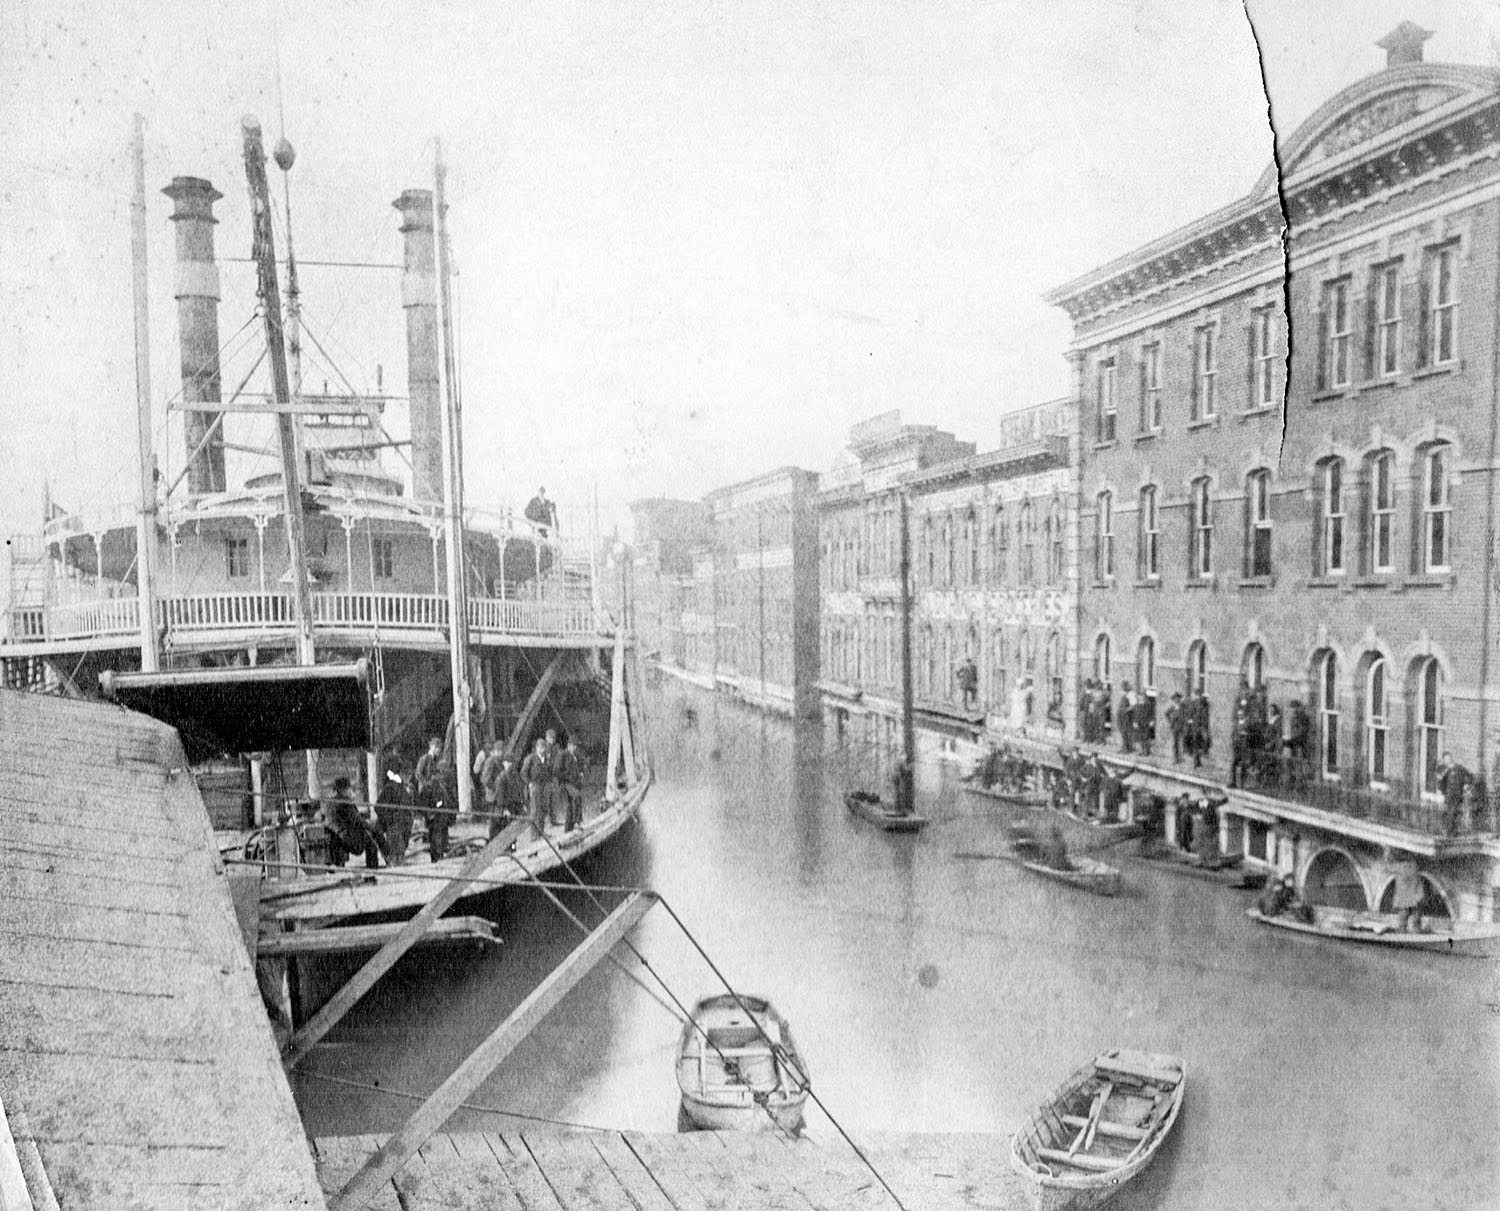 The steamer Bonanza at the Portsmouth Ohio waterfront during the 1884 flood. (Keith Norrington collection)